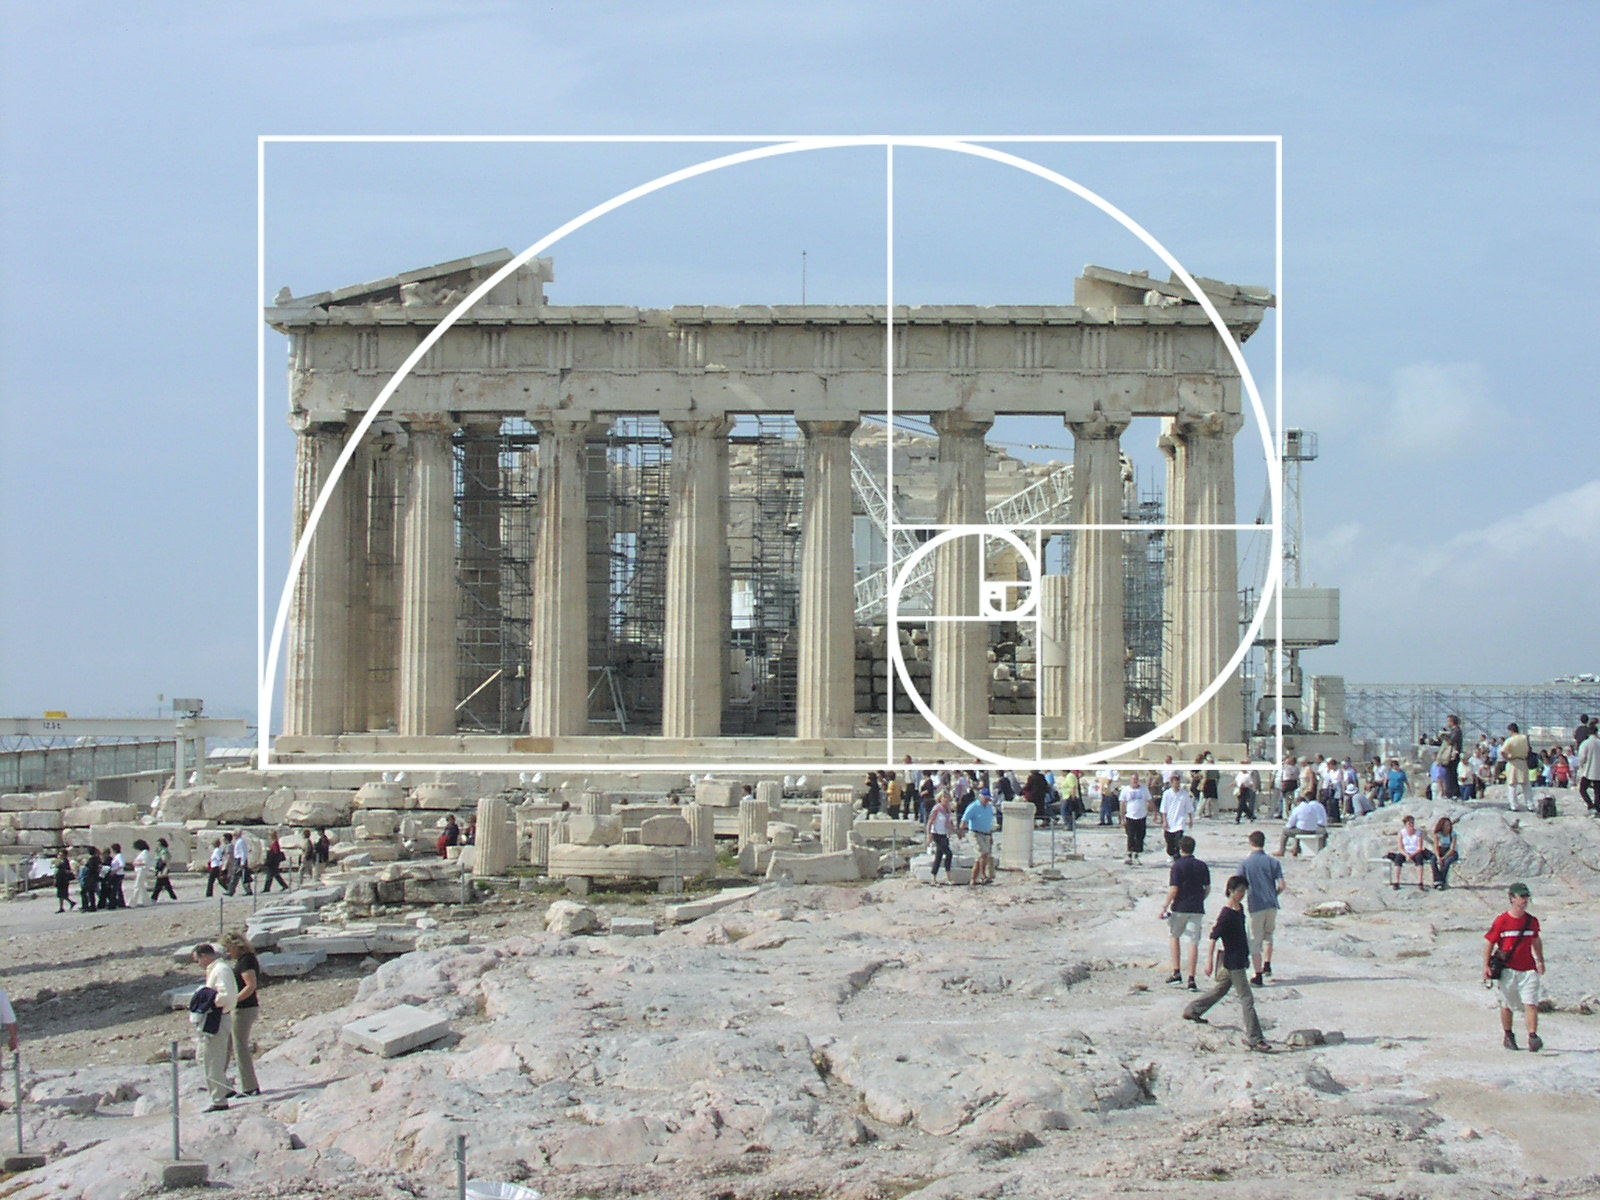 Photo of the Parthenon by Sébastien Bertrand on Flickr. Image via fastcodesign.com & The Golden Ratio: Relevant or not?   News   Archinect